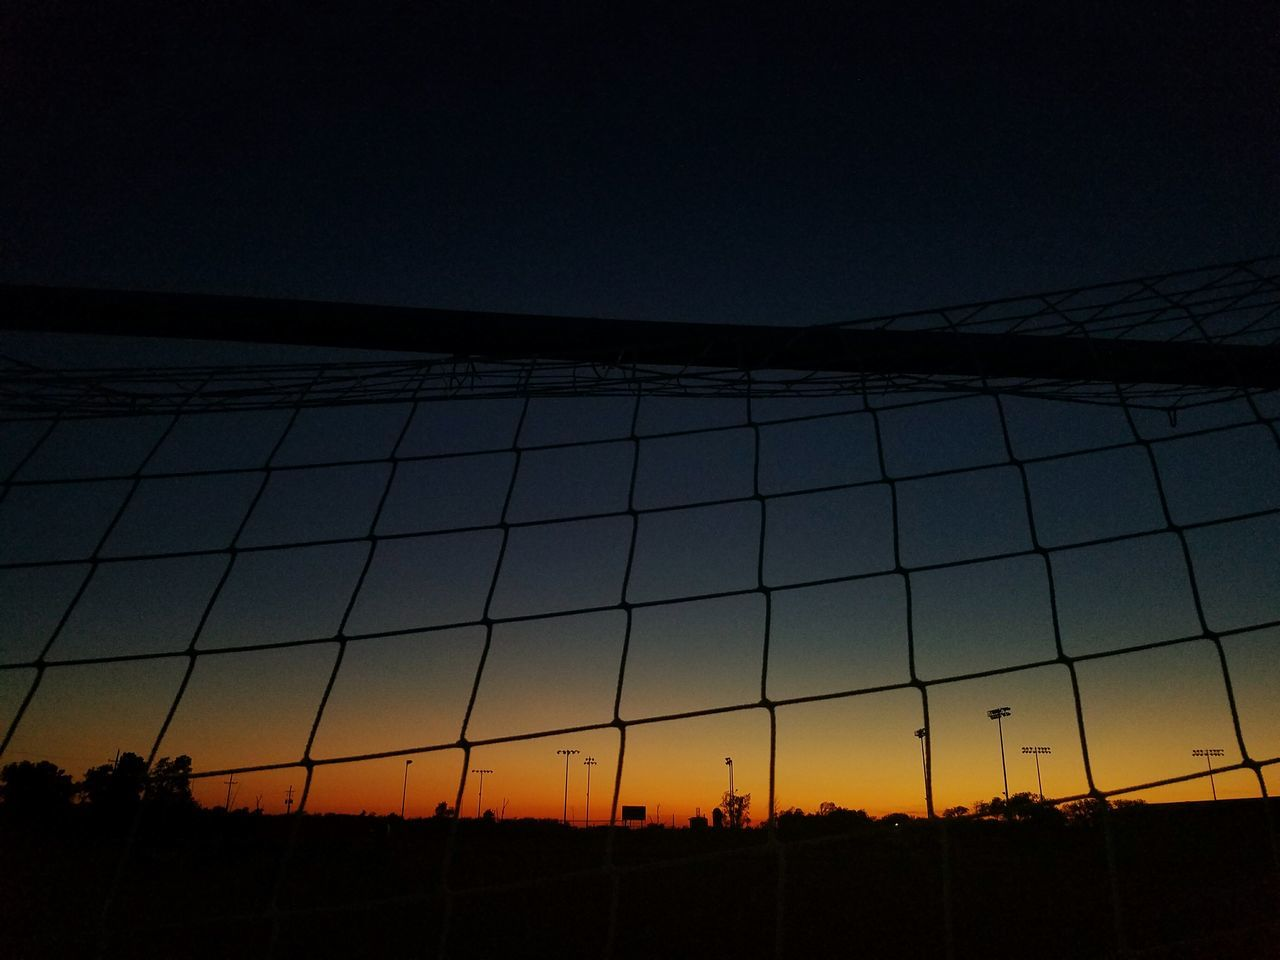 Low Angle View Sky Sunset Architecture Futuristic No People City Outdoors Nature Day Soccer Soccer⚽ Soccer ⚽ Soccer Field Soccer Game Soccernet